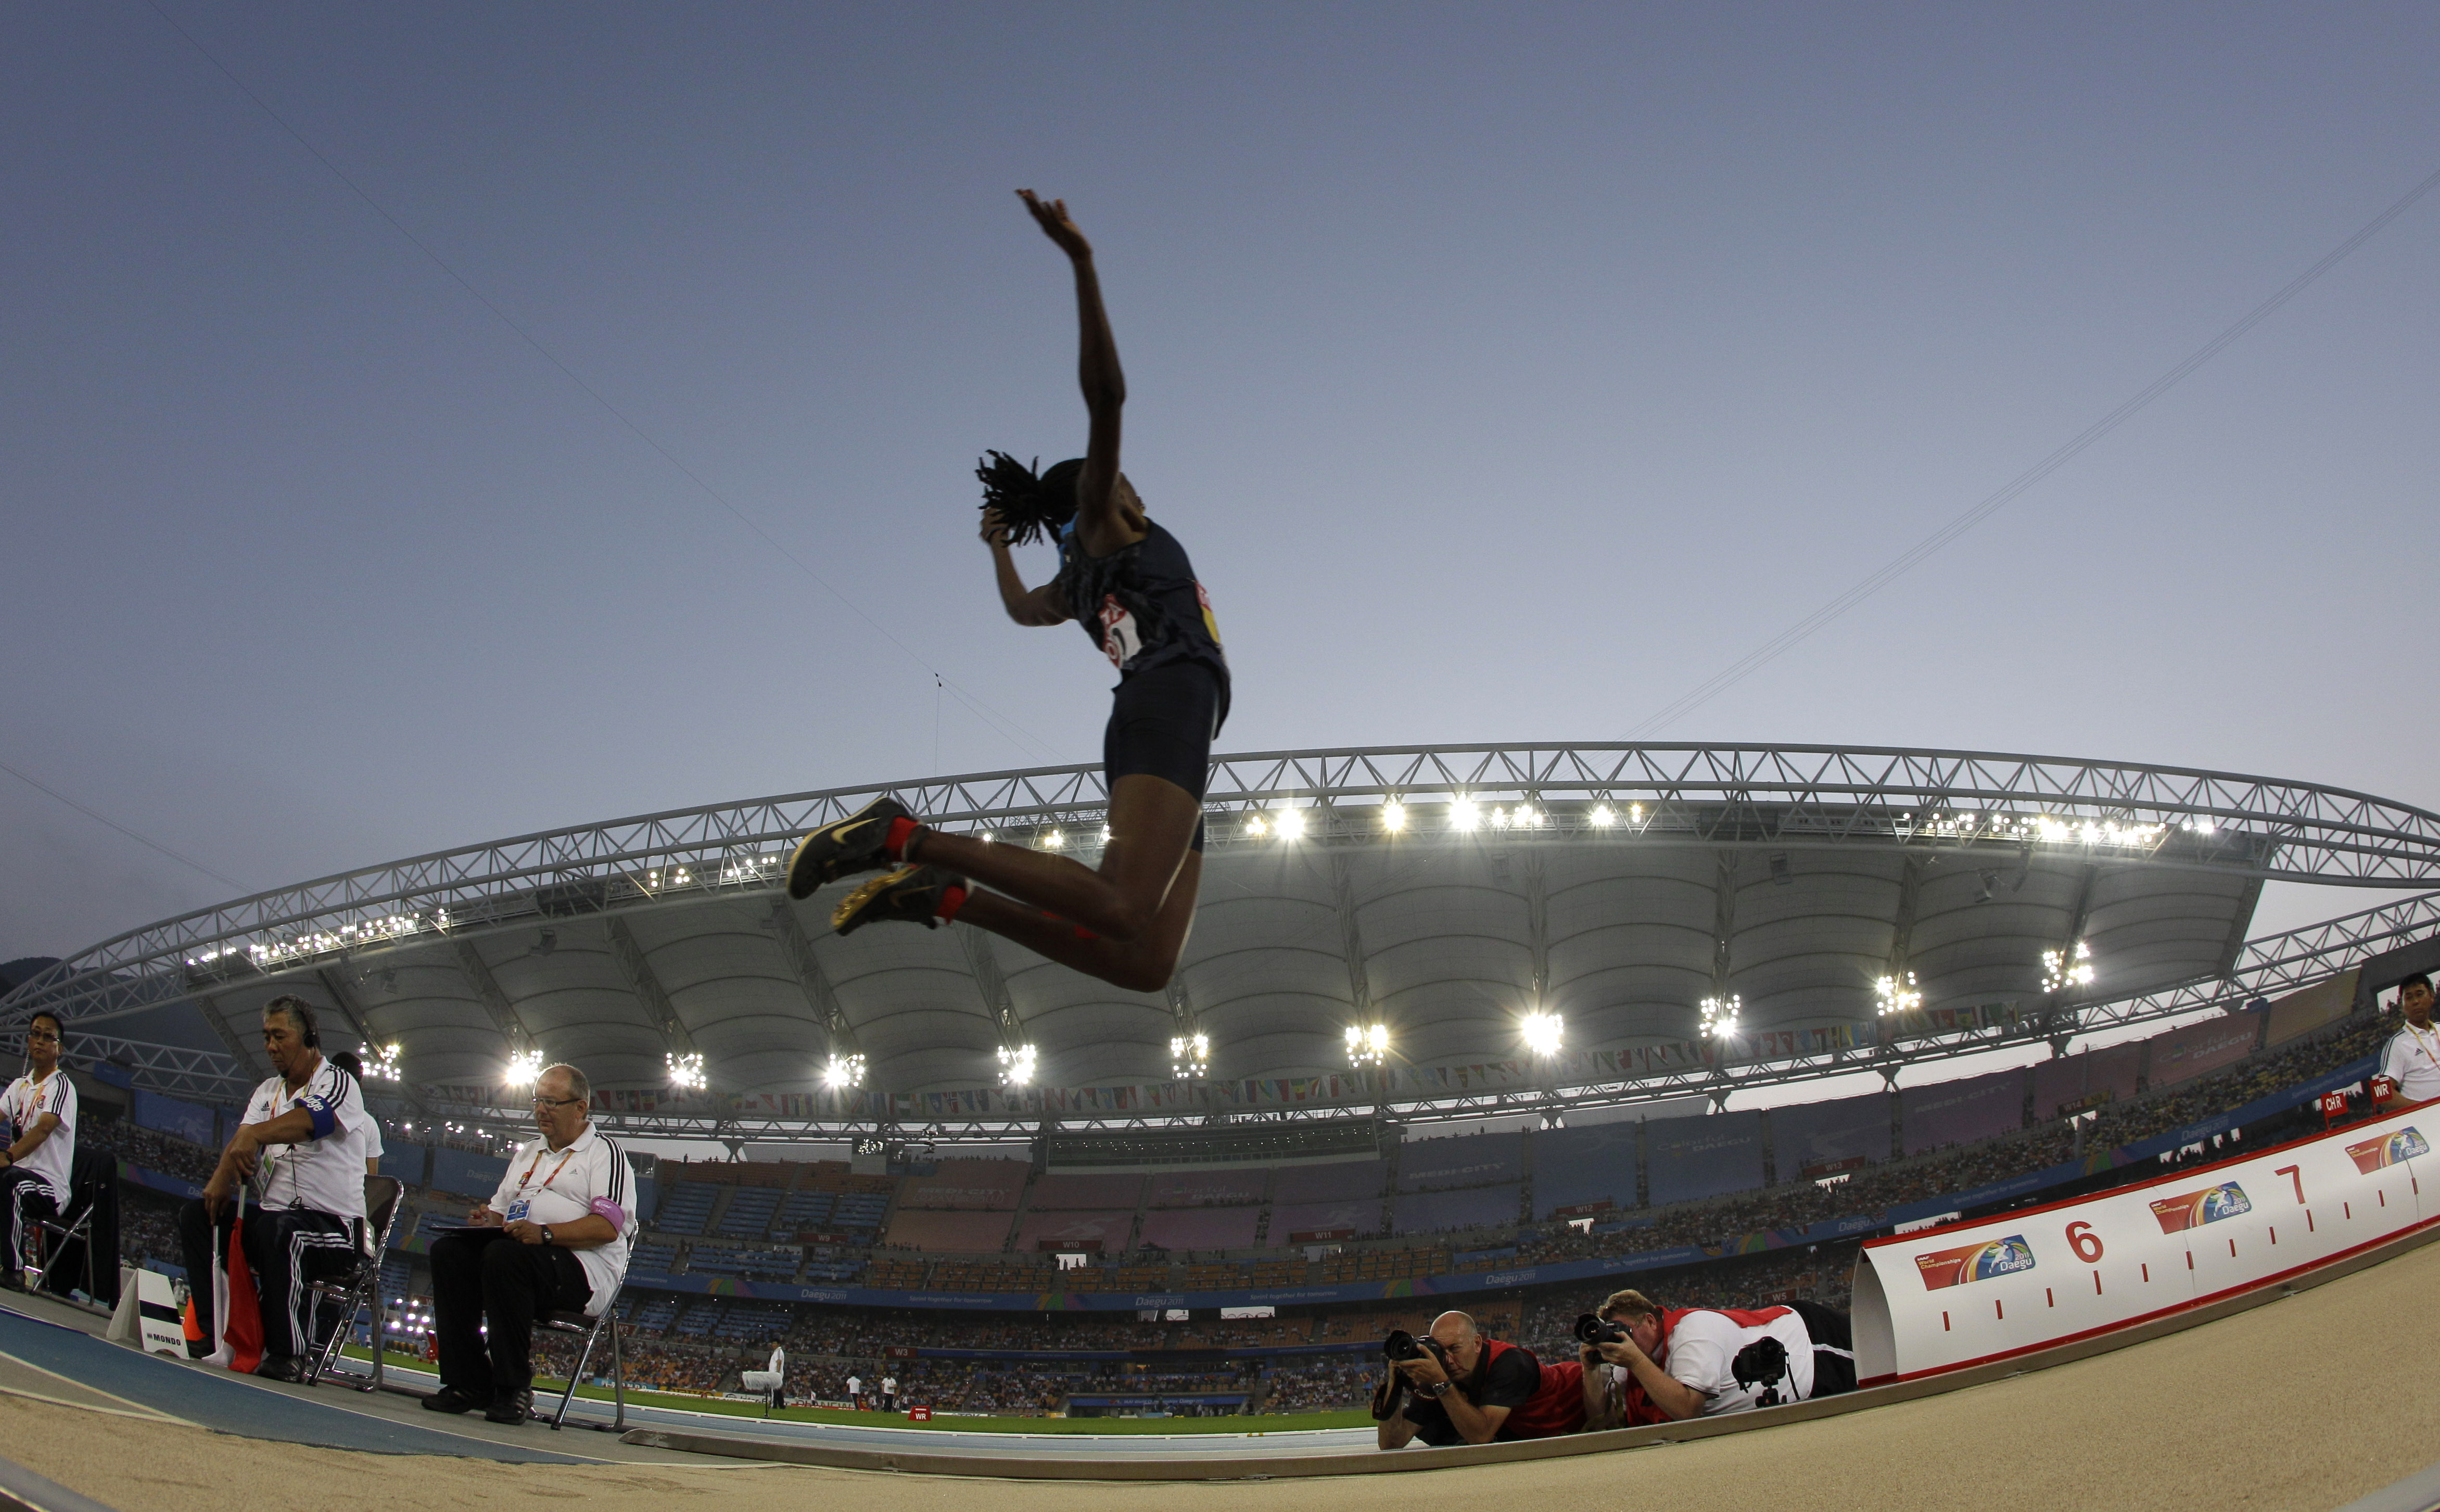 USA's Brittney Reese competes in the final of the Women's Long Jump at the World Athletics Championships in Daegu, South Korea, Sunday, Aug. 28, 2011.(AP Photo/David J. Phillip)